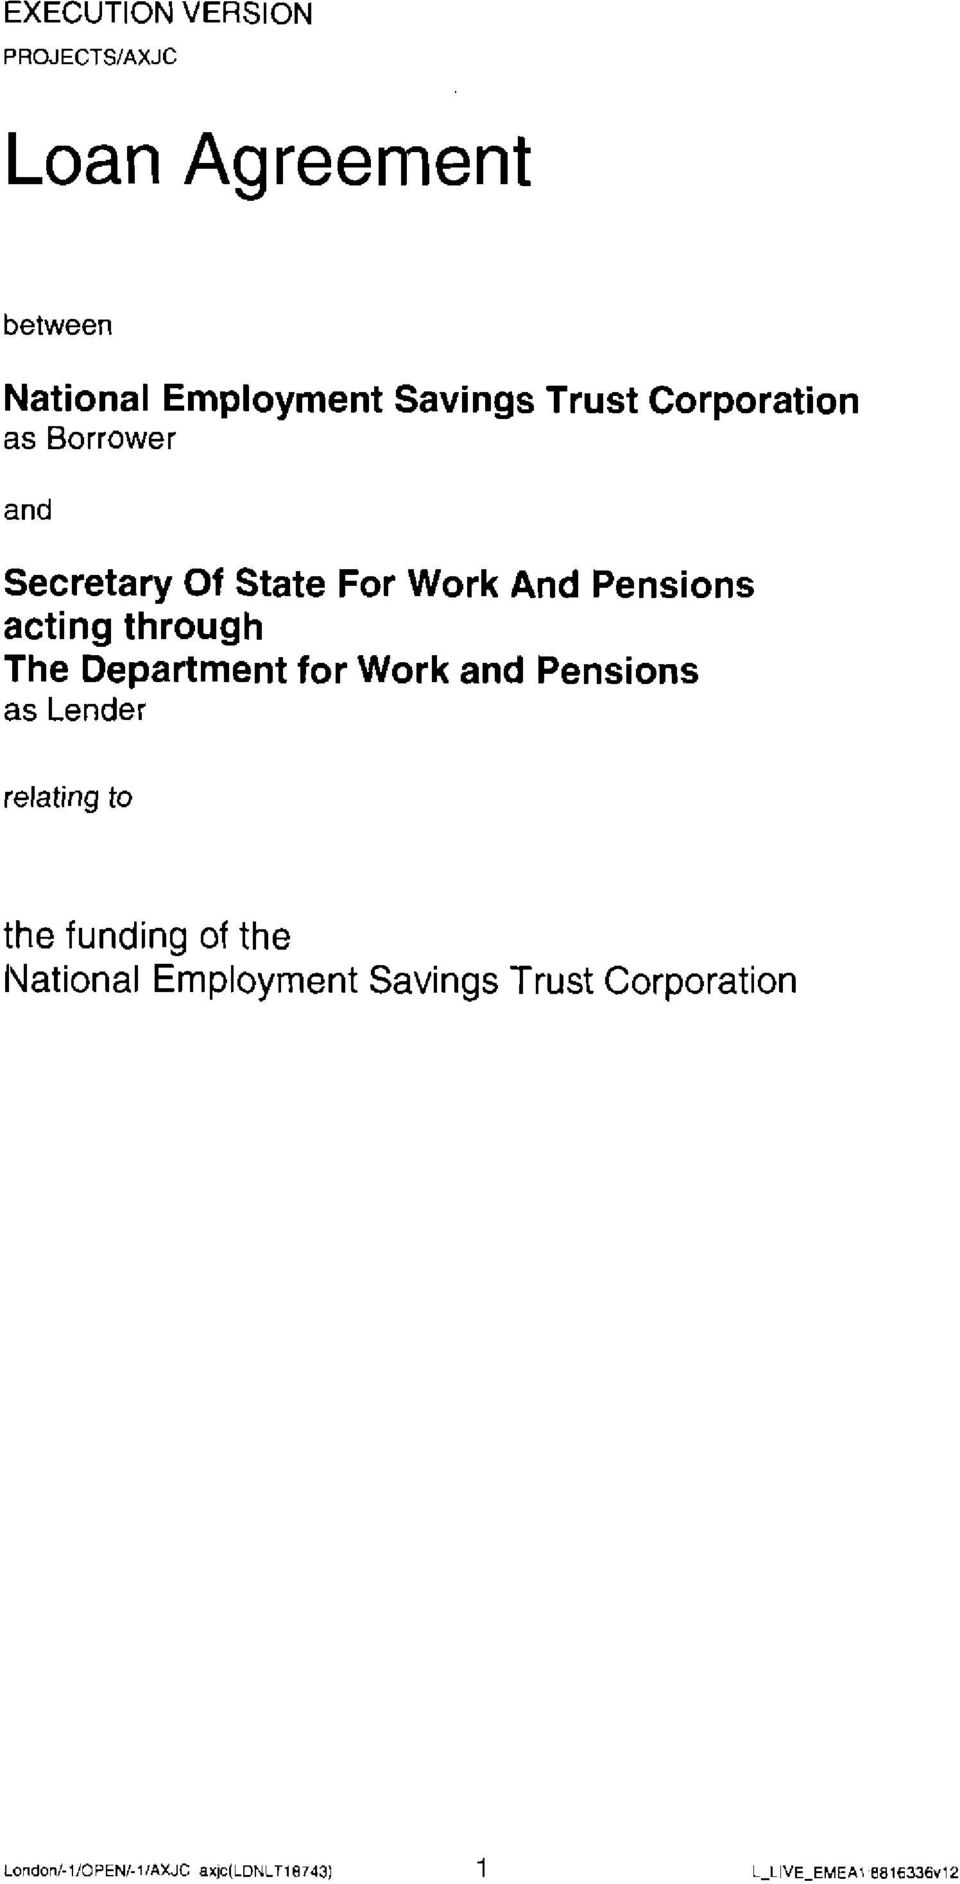 For Work And Pensions acting through The Department for Work and Pensions